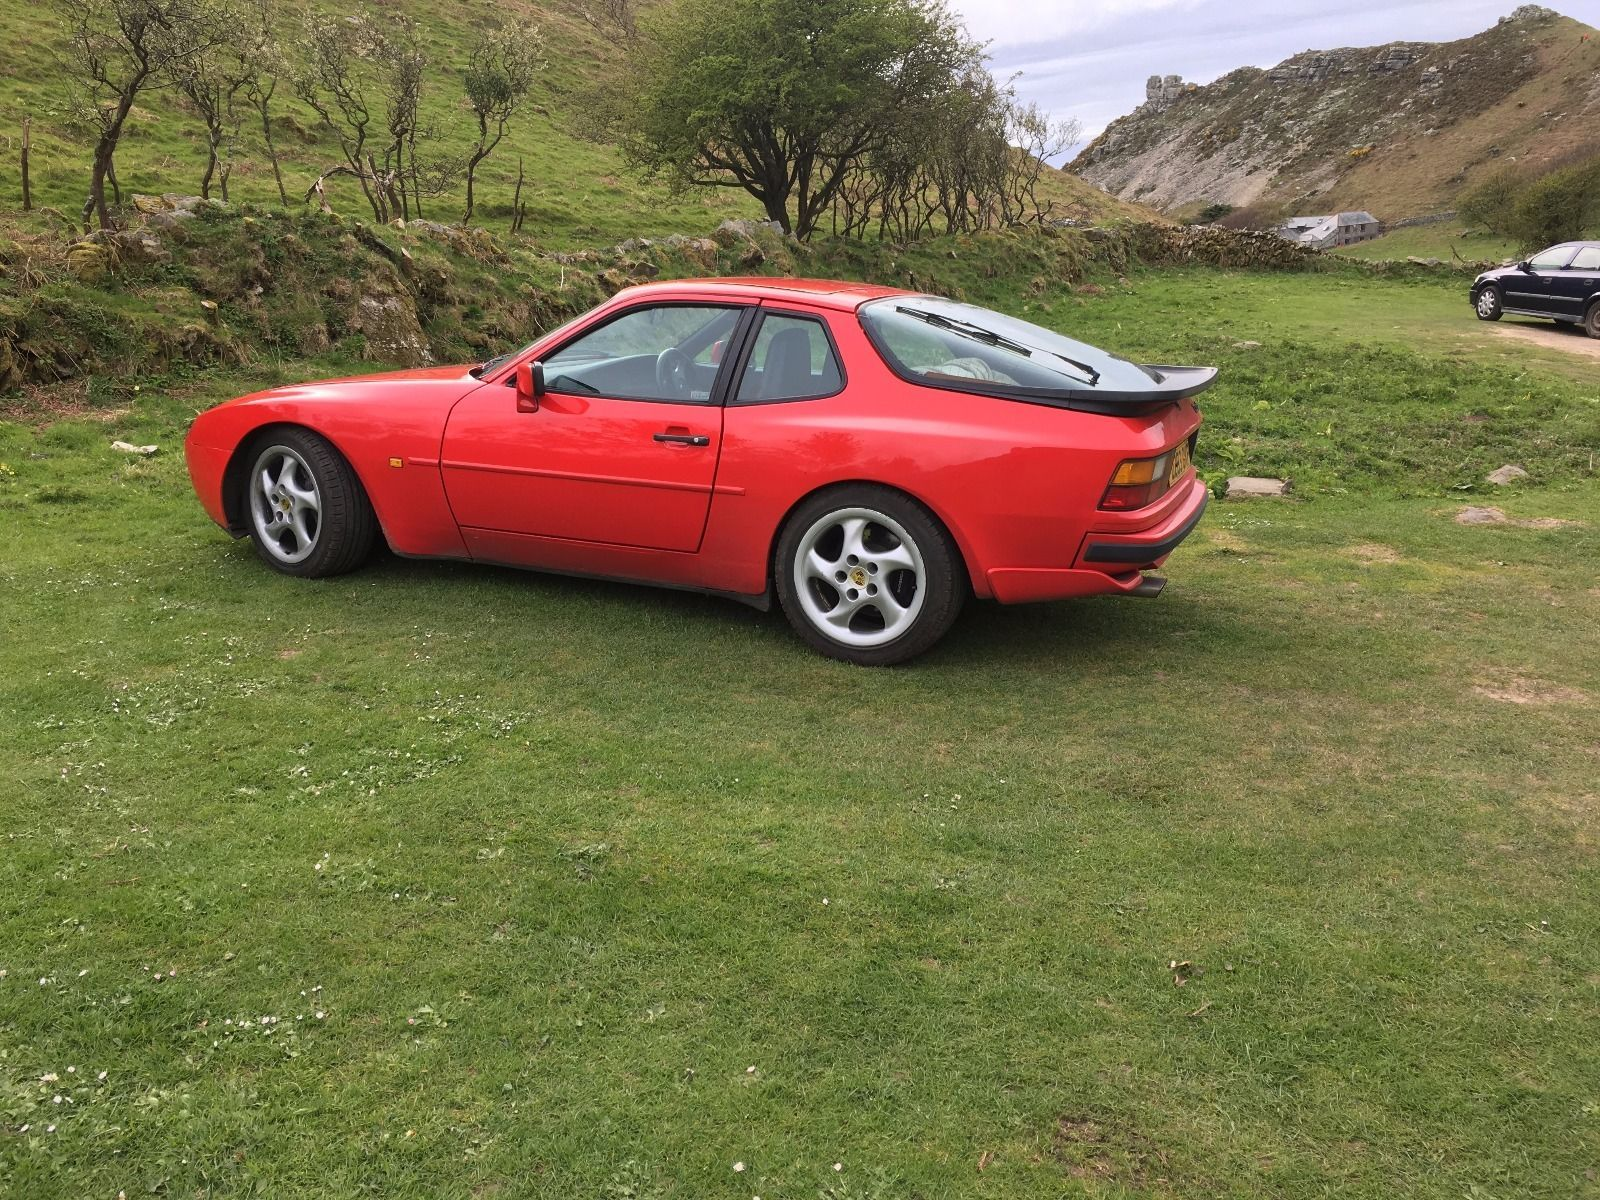 Looking For A Porsche 944 Turbo This One Is On Ebay Porsche 944 Porsche Turbo